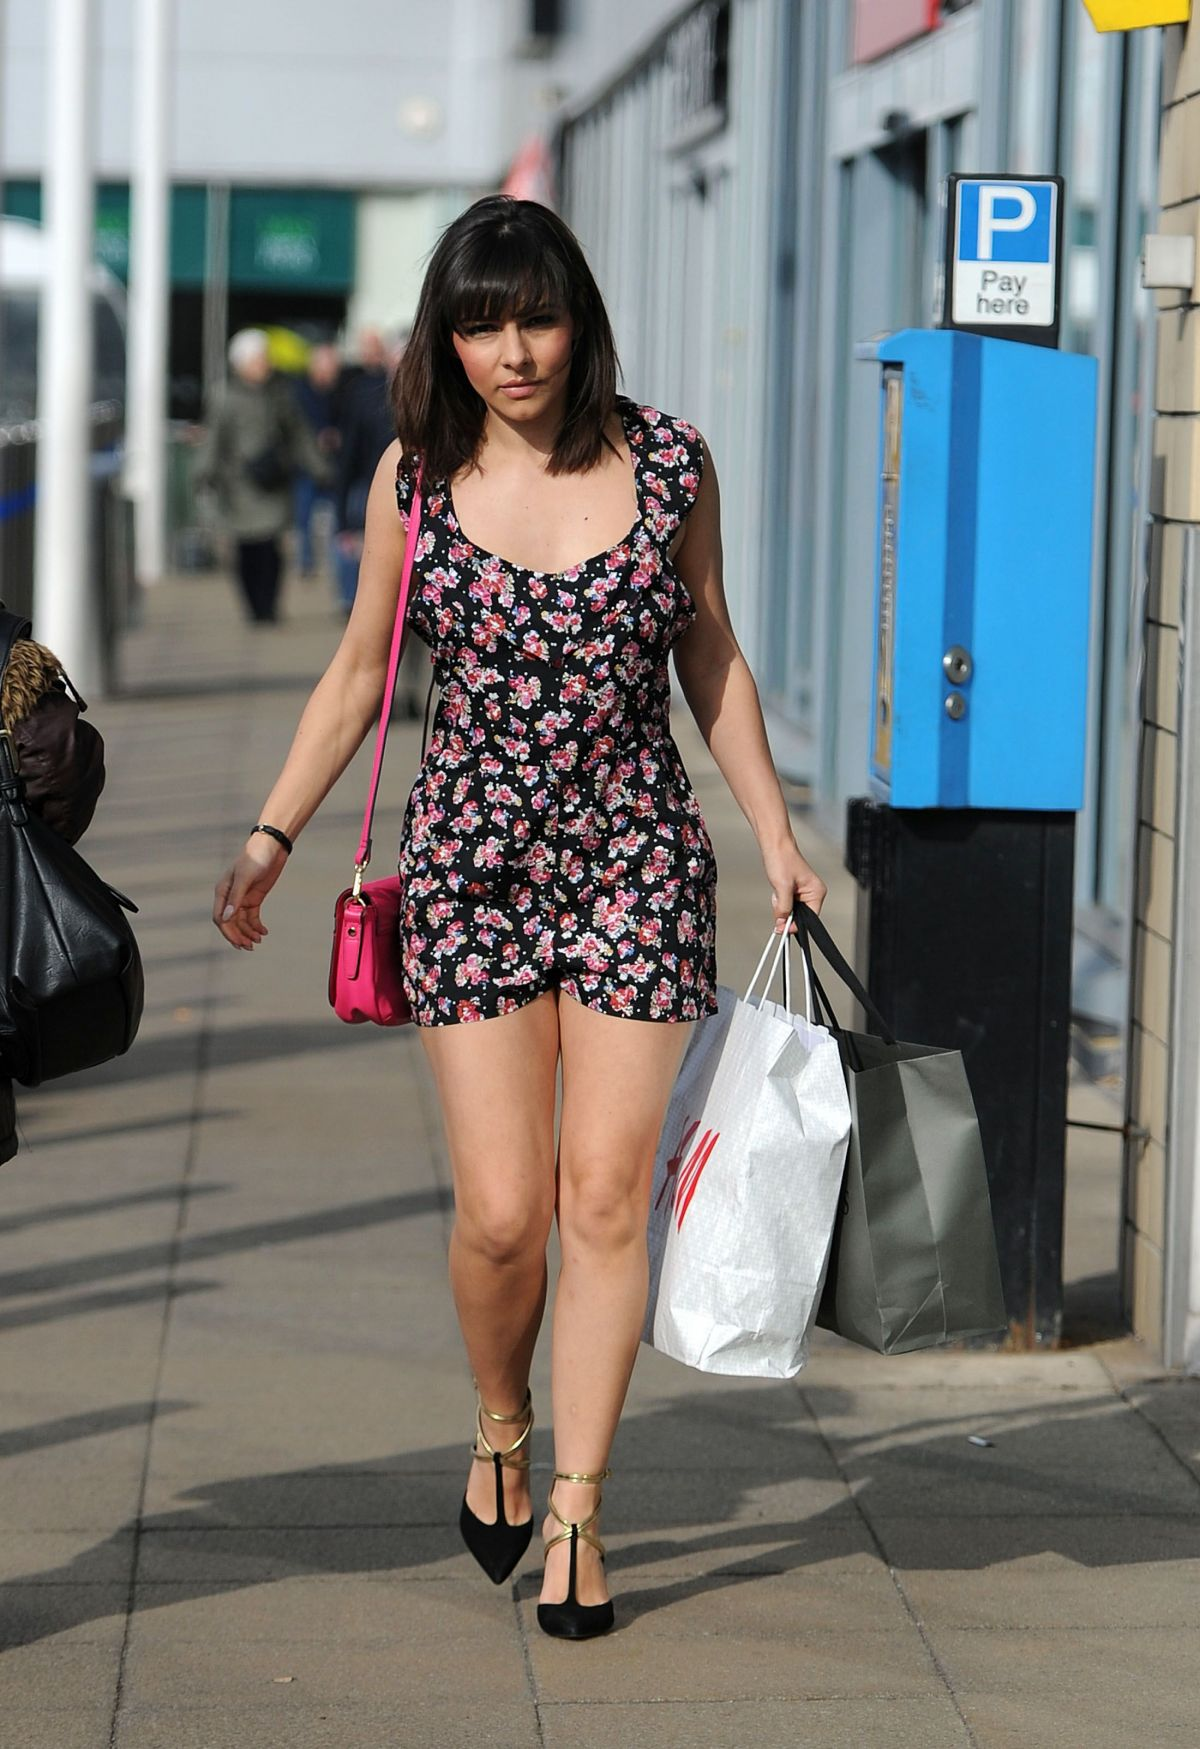 Roxanne Pallett nude (27 photo), Ass, Hot, Boobs, cleavage 2018